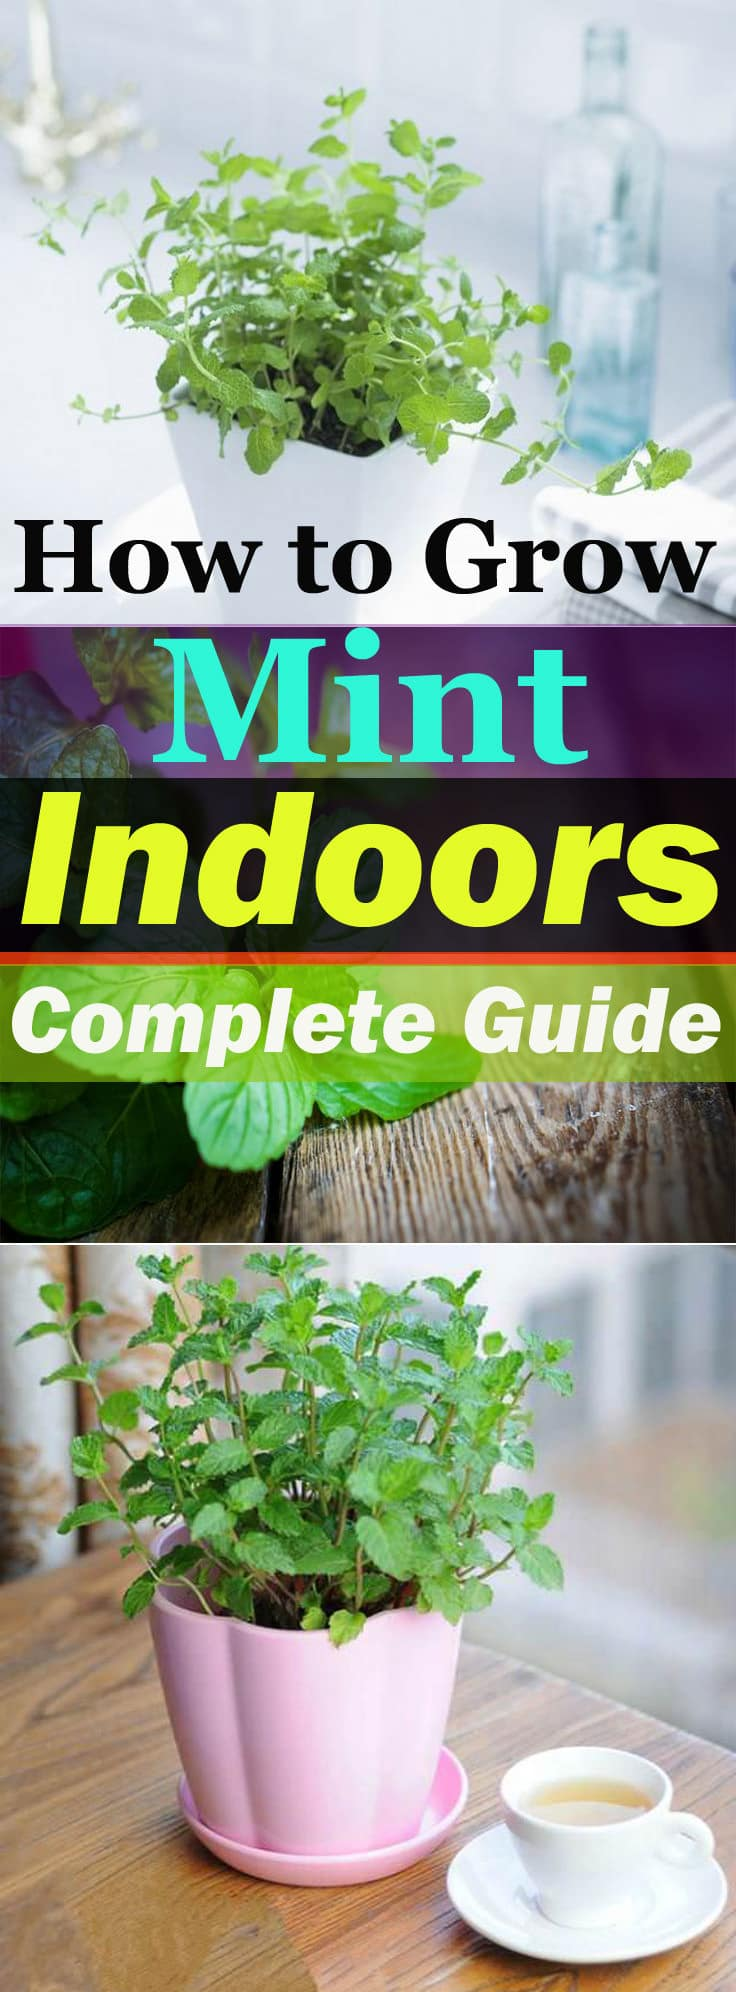 How To Grow Custard Apple: Growing Mint Indoors & How To Care For It